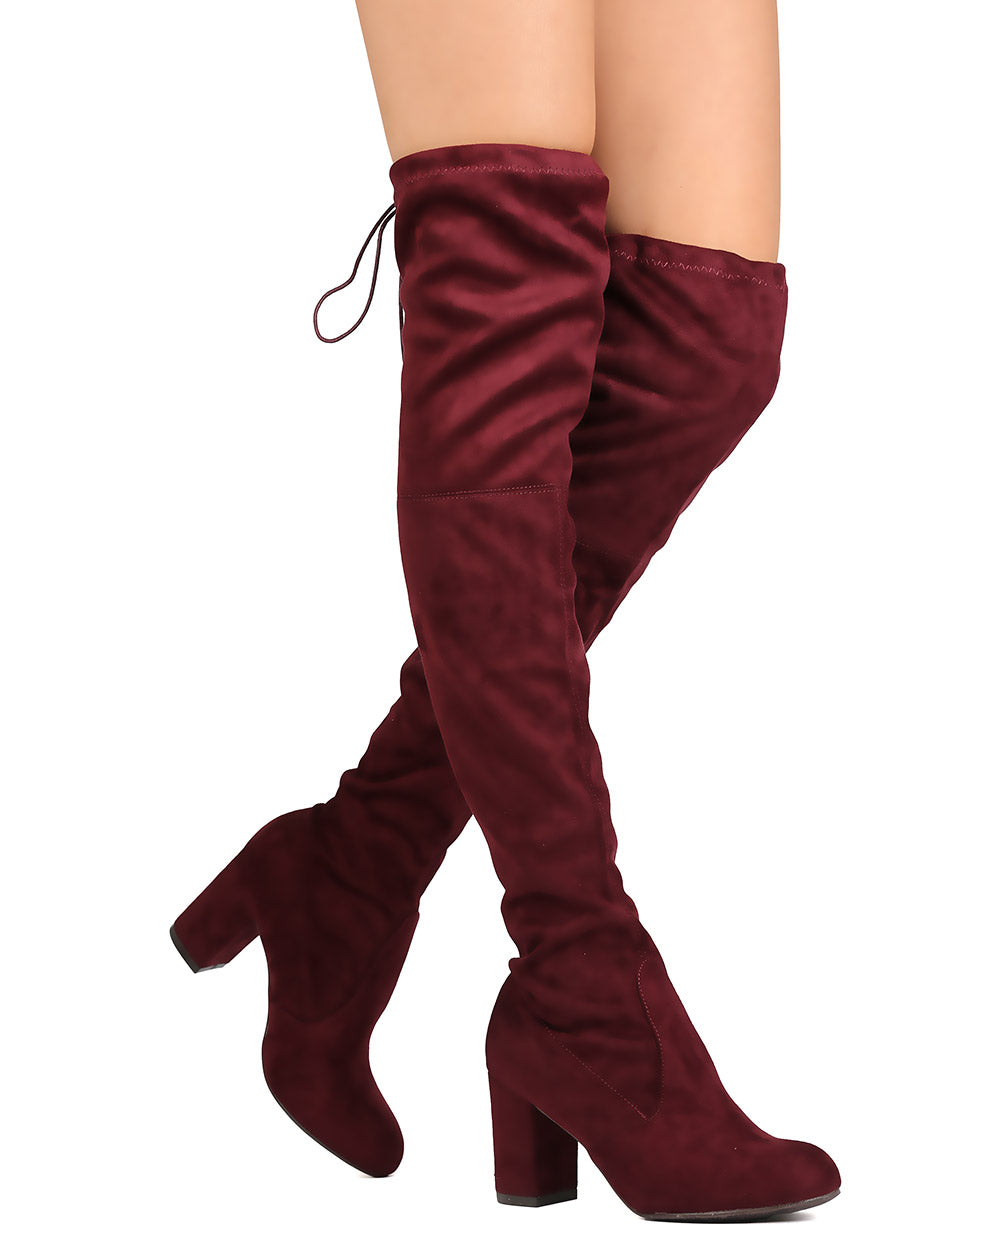 Nature Breeze Bonita-02OK Burgundy OTK Heeled Boot W/ string on top of boot